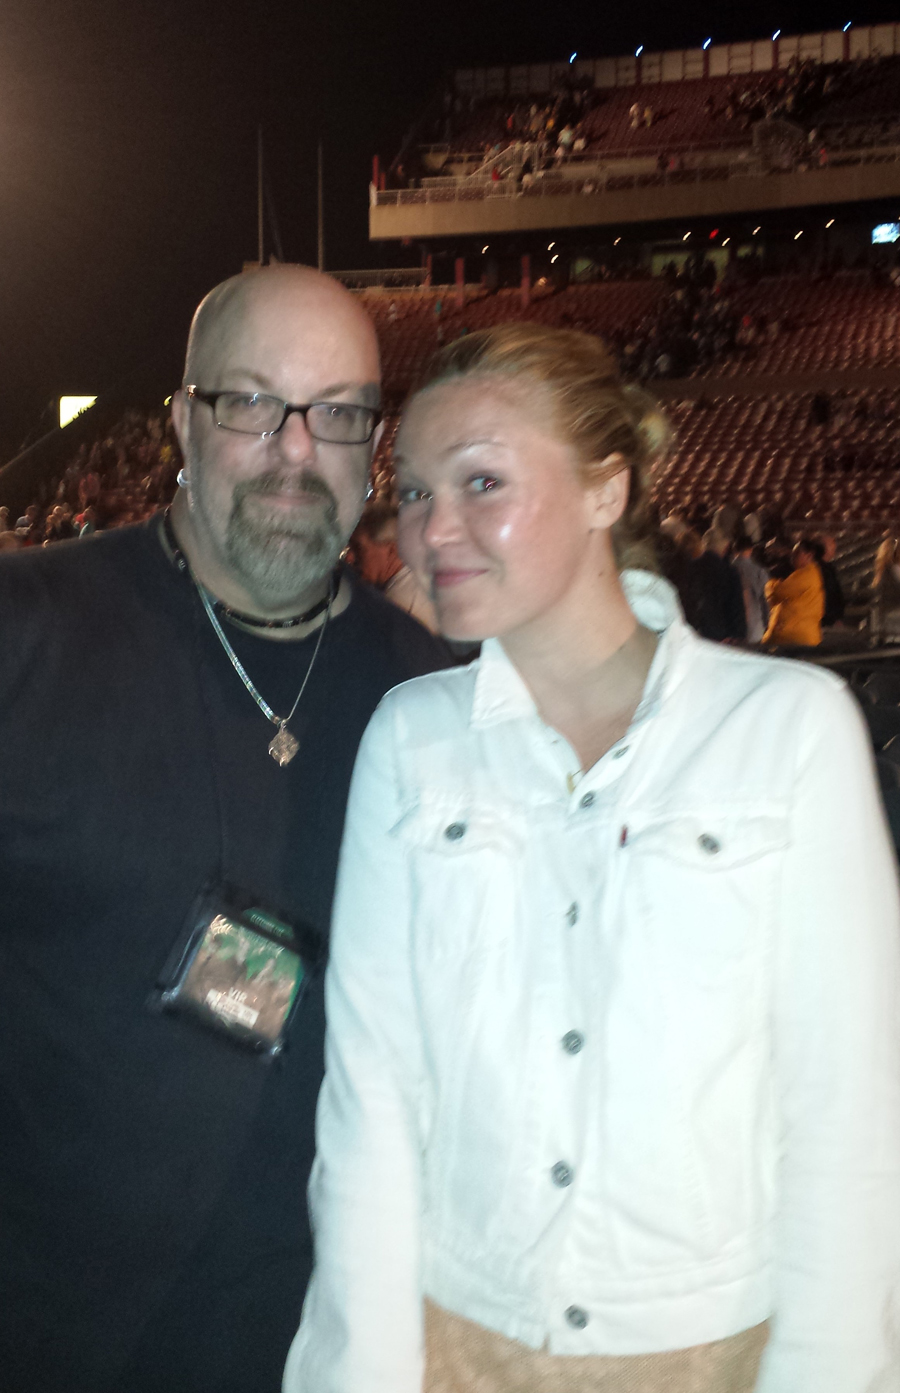 With actress Julia Stiles at a Fleetwood Mac concert at Jones Beach Theater in Wantagh, NY- June 22, 2013